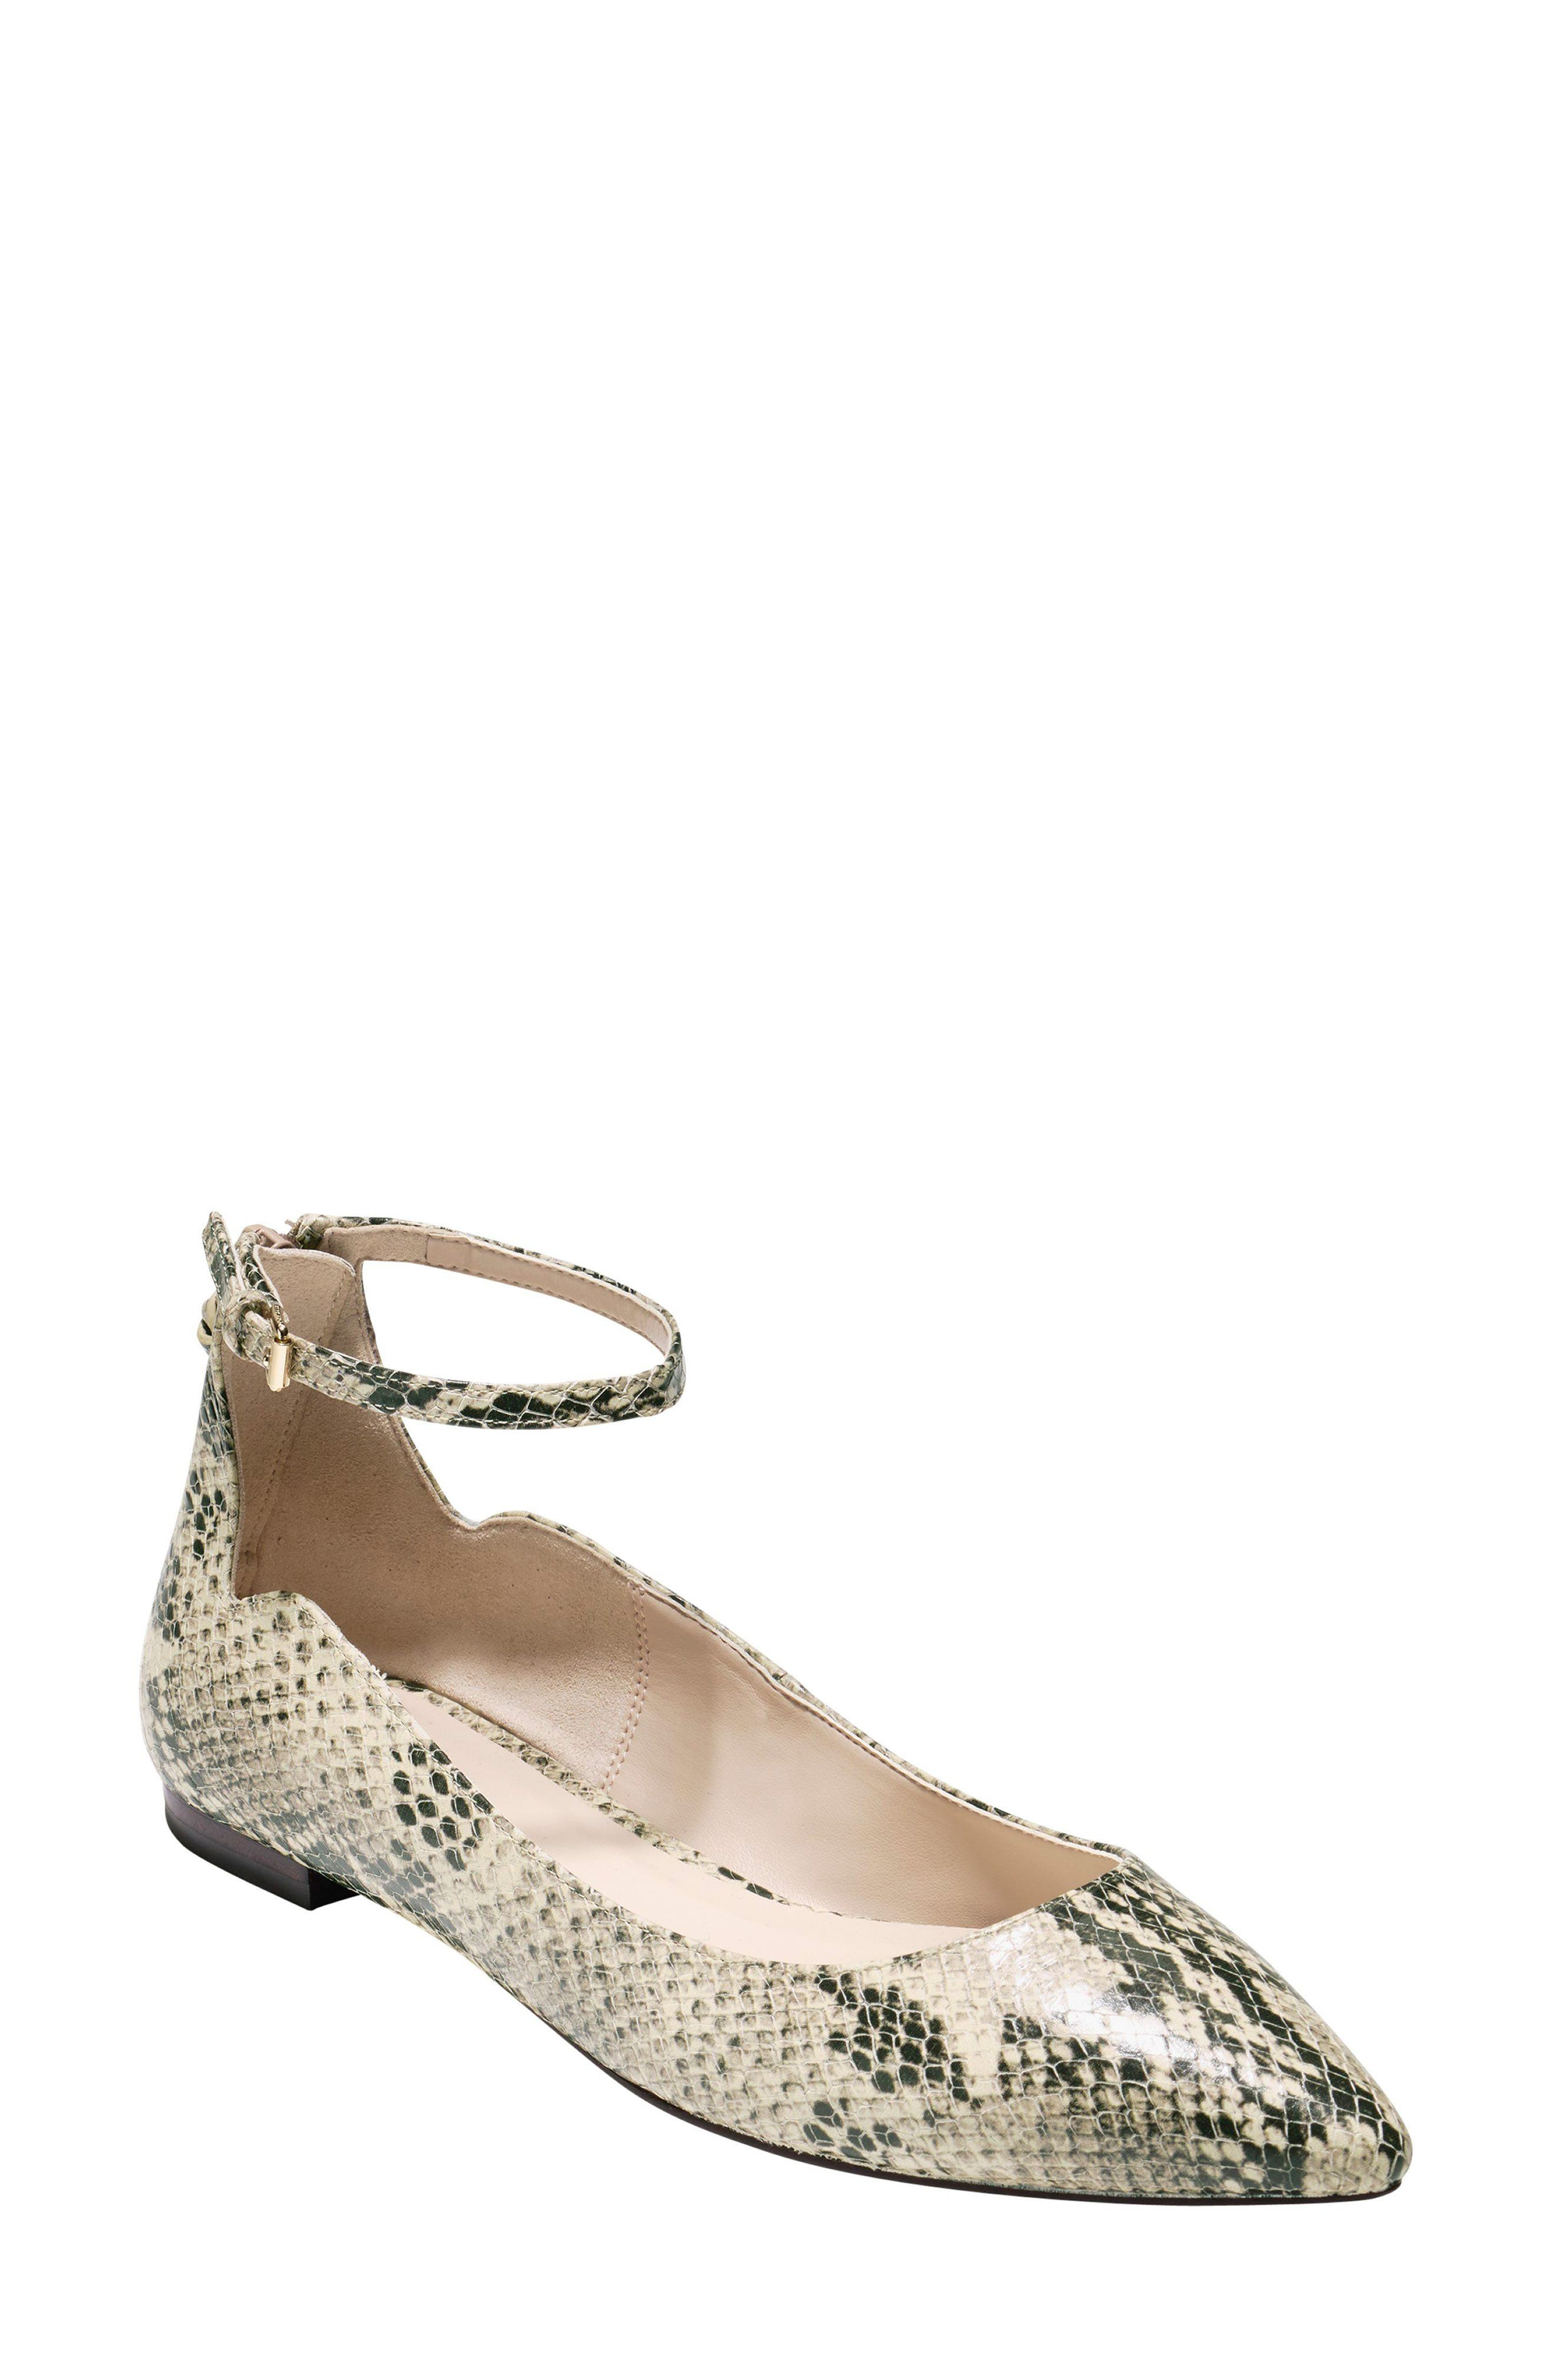 Main Image - Cole Haan Millicent Ankle Strap Skimmer Flat (Women)